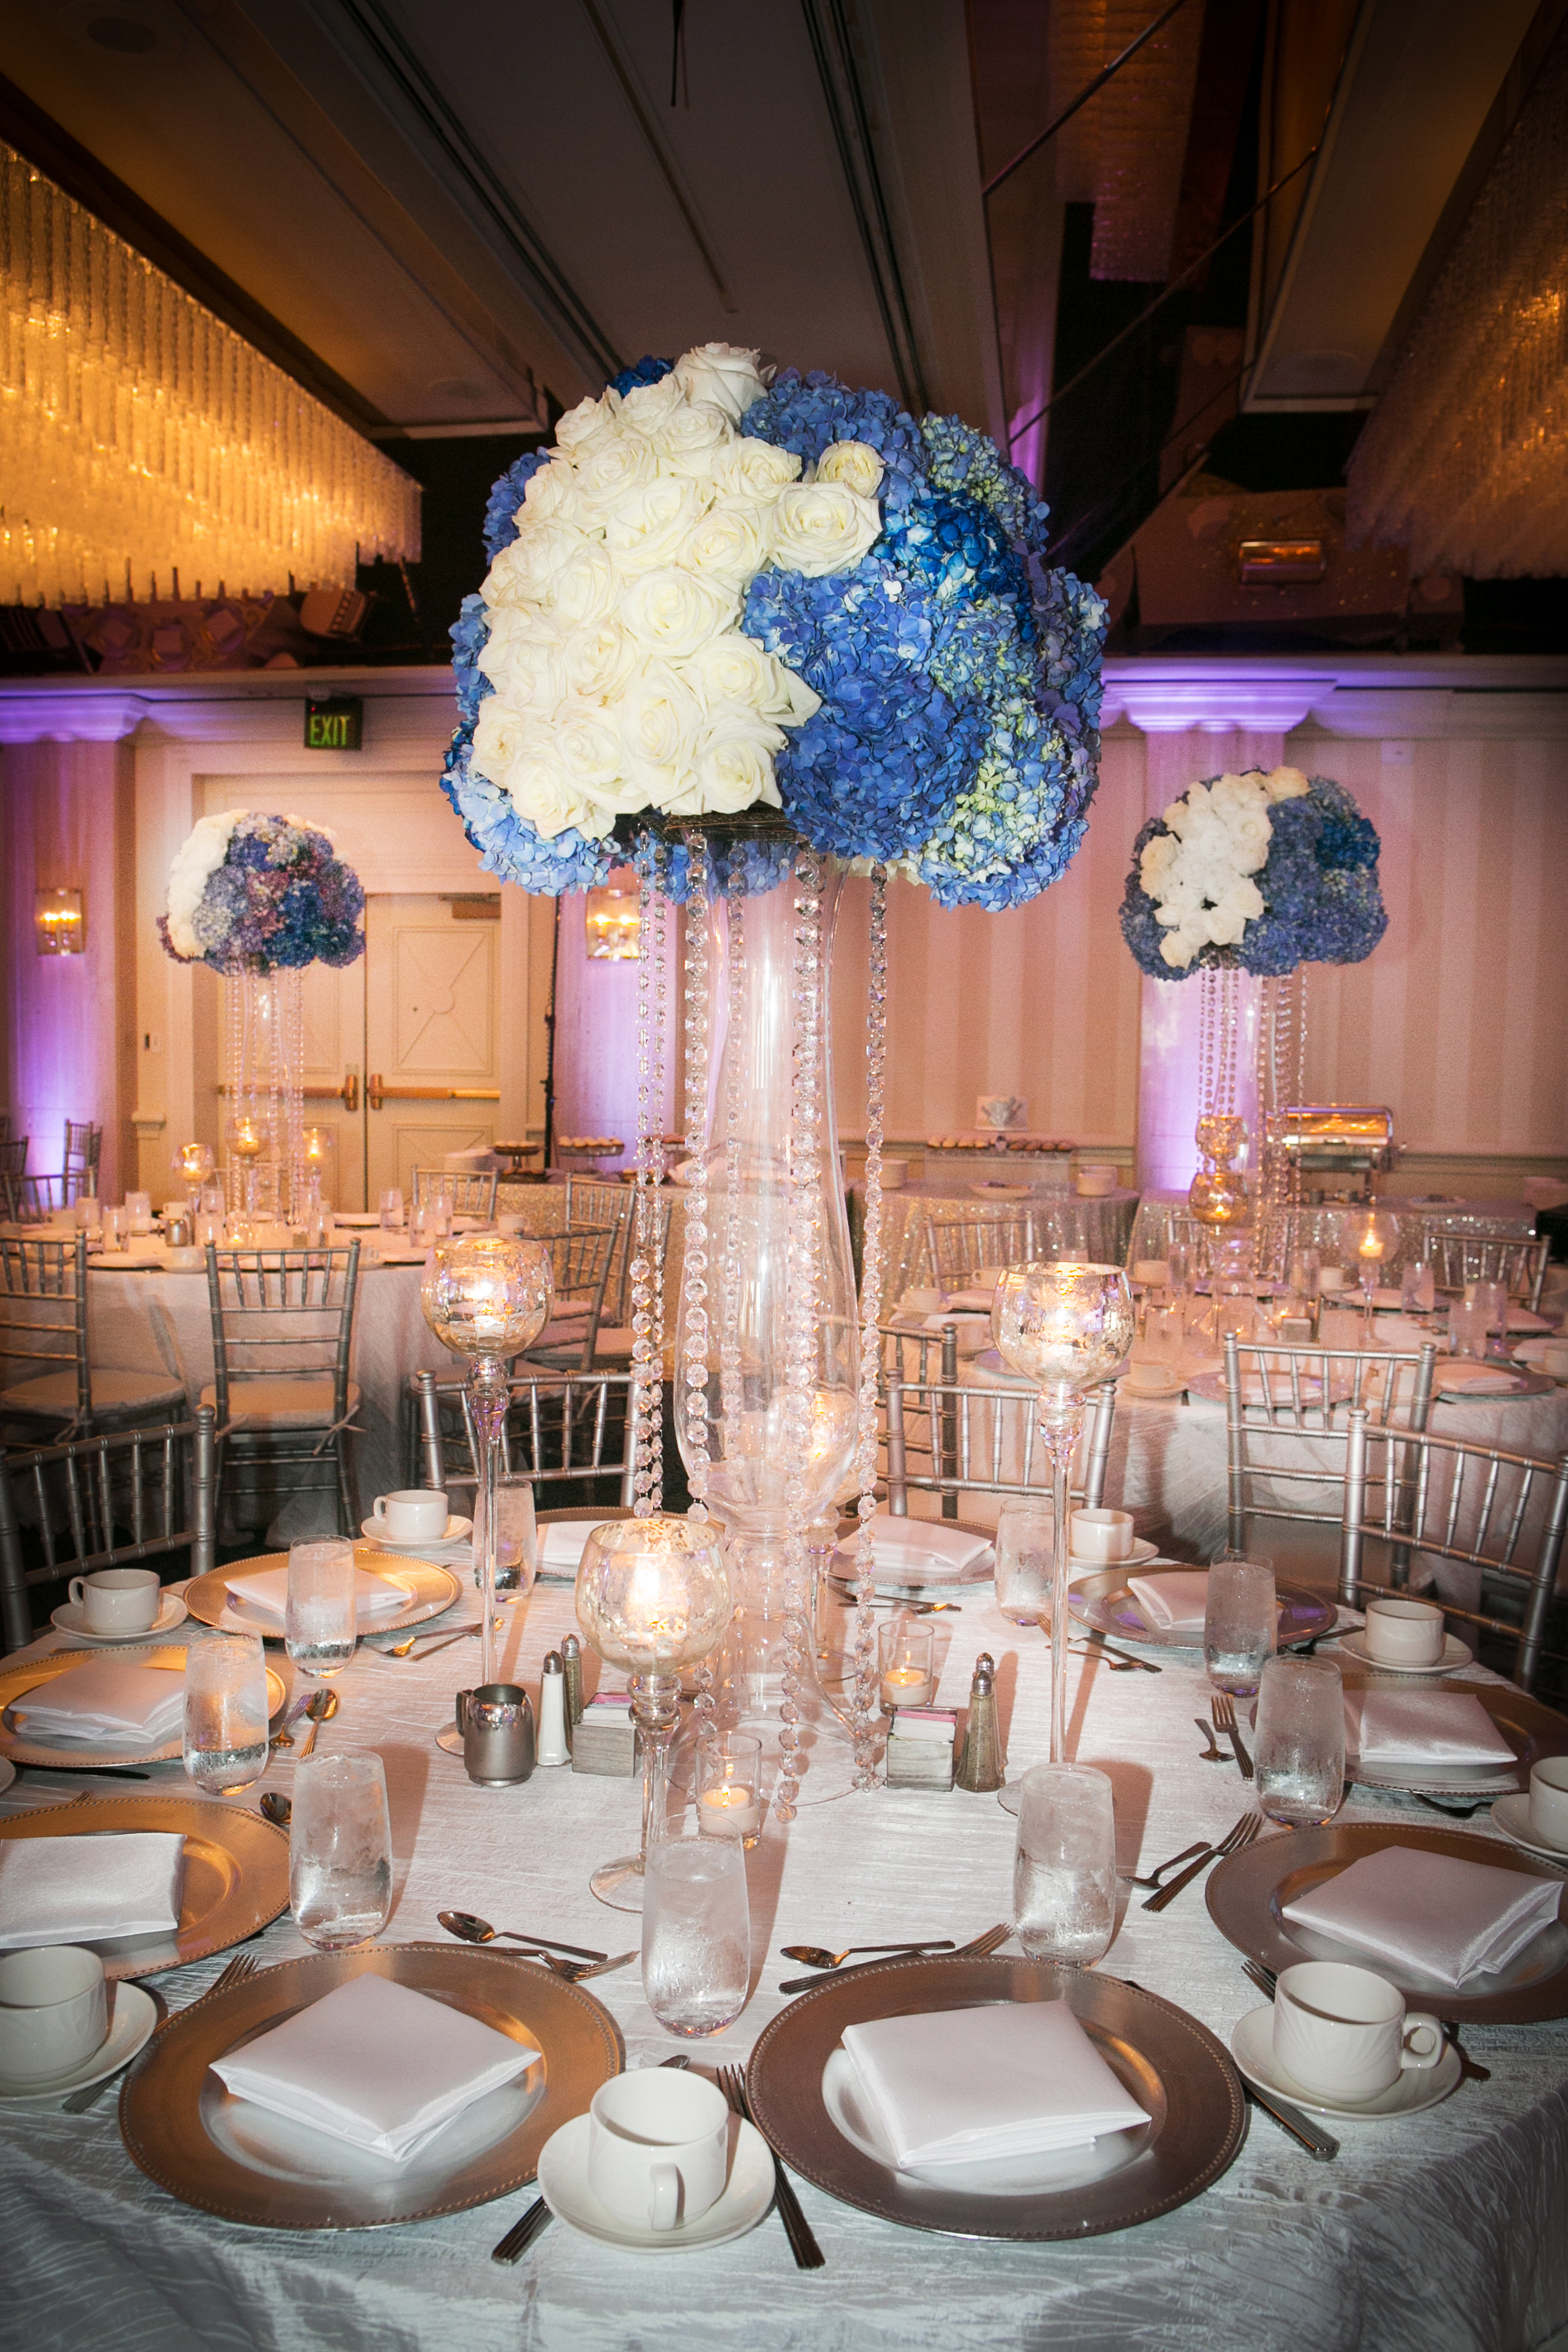 13_White and Blue Centerpiece_ArtQuest Flowers.jpg